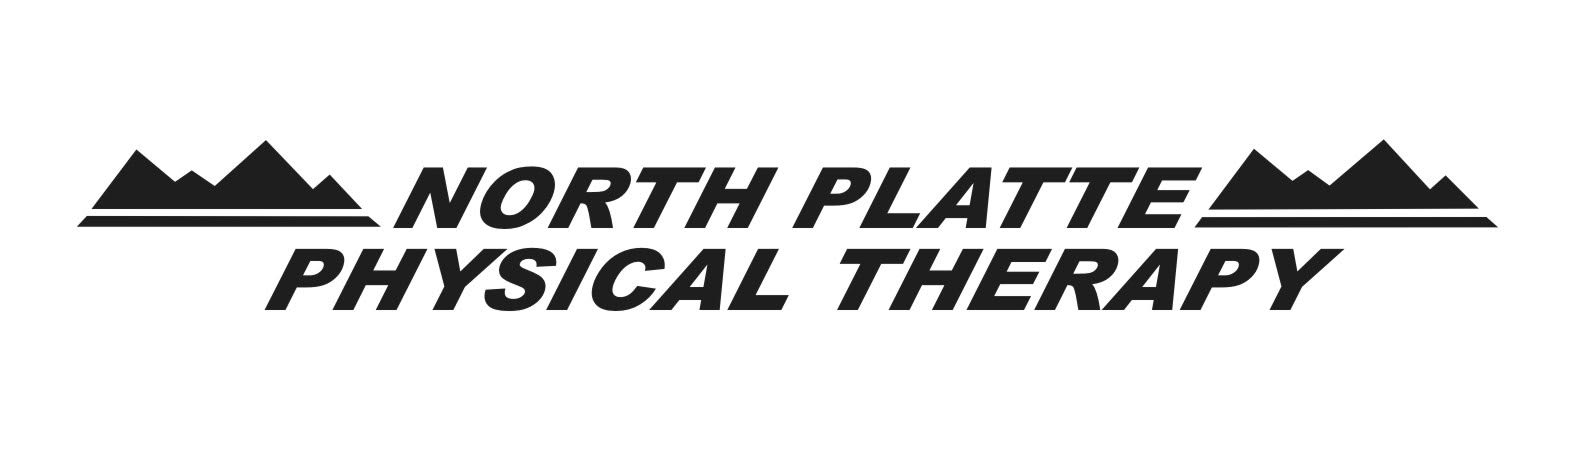 north platte physical therapy logo